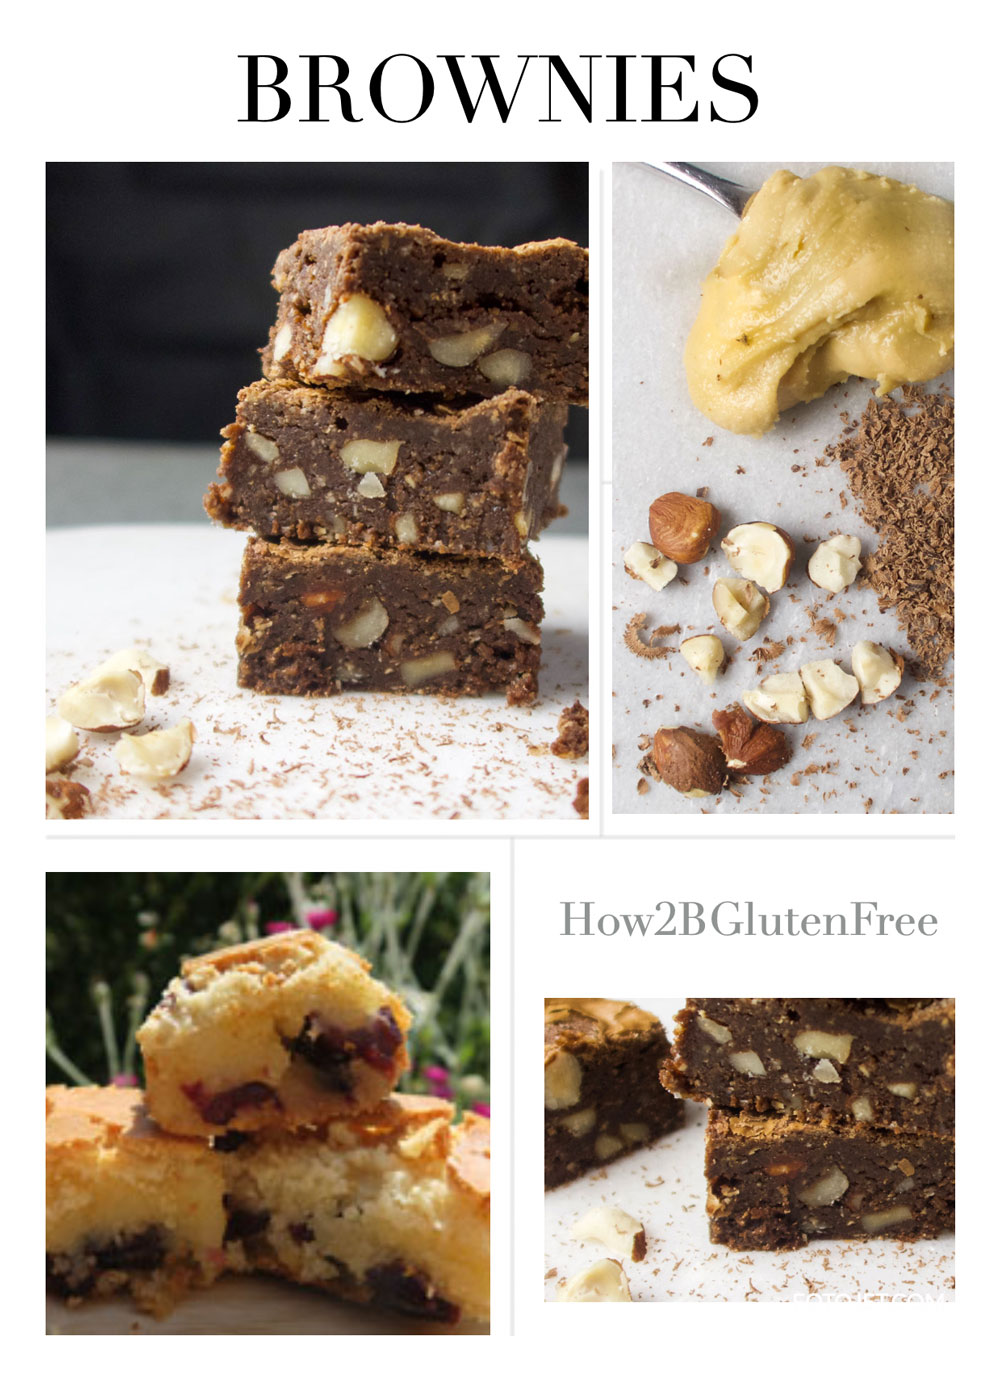 Gluten Free Brownie Recipes.Easy to follow brownie recipes. Whether you like your brownies chewy, fudgy or nutty, there's a recipe for you.